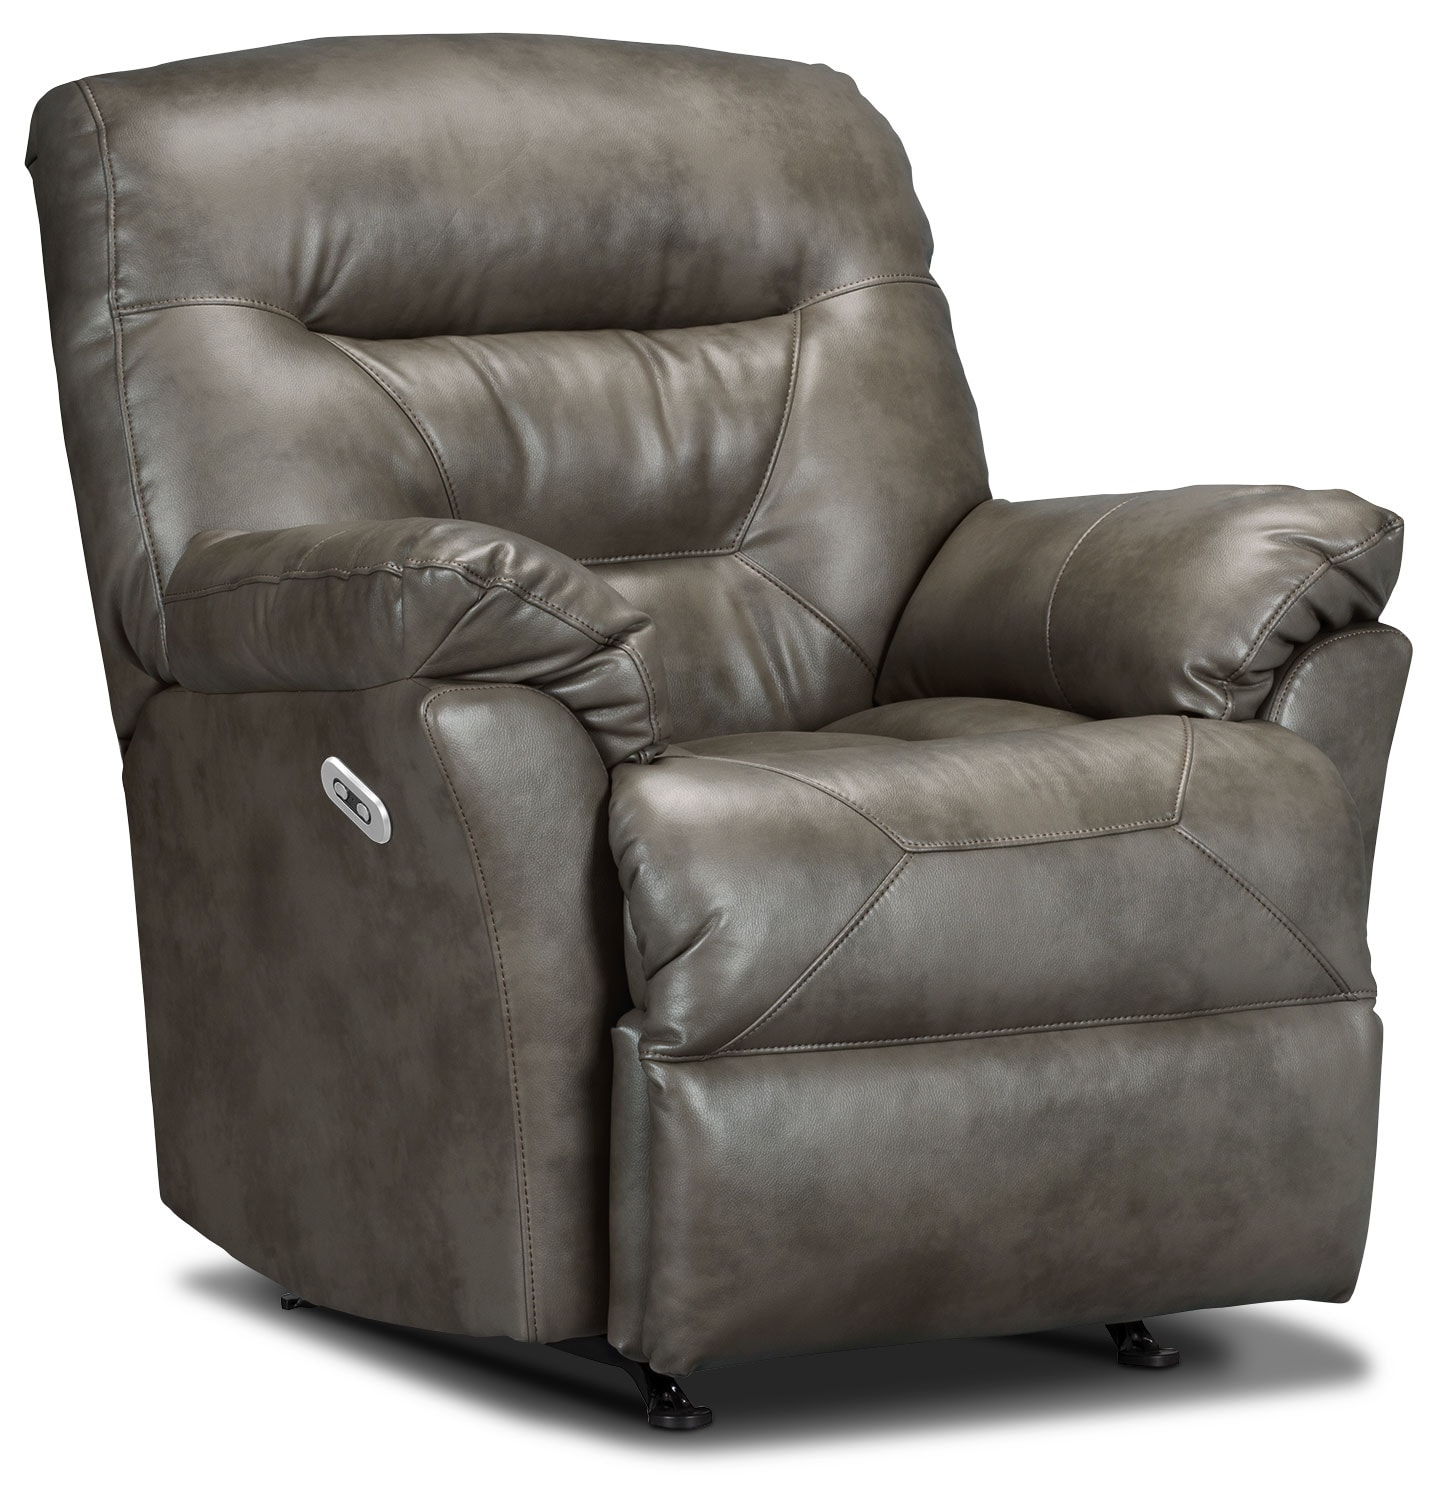 Designed2B Recliner 4579 Leather-Look Fabric Power Recliner - Smoke